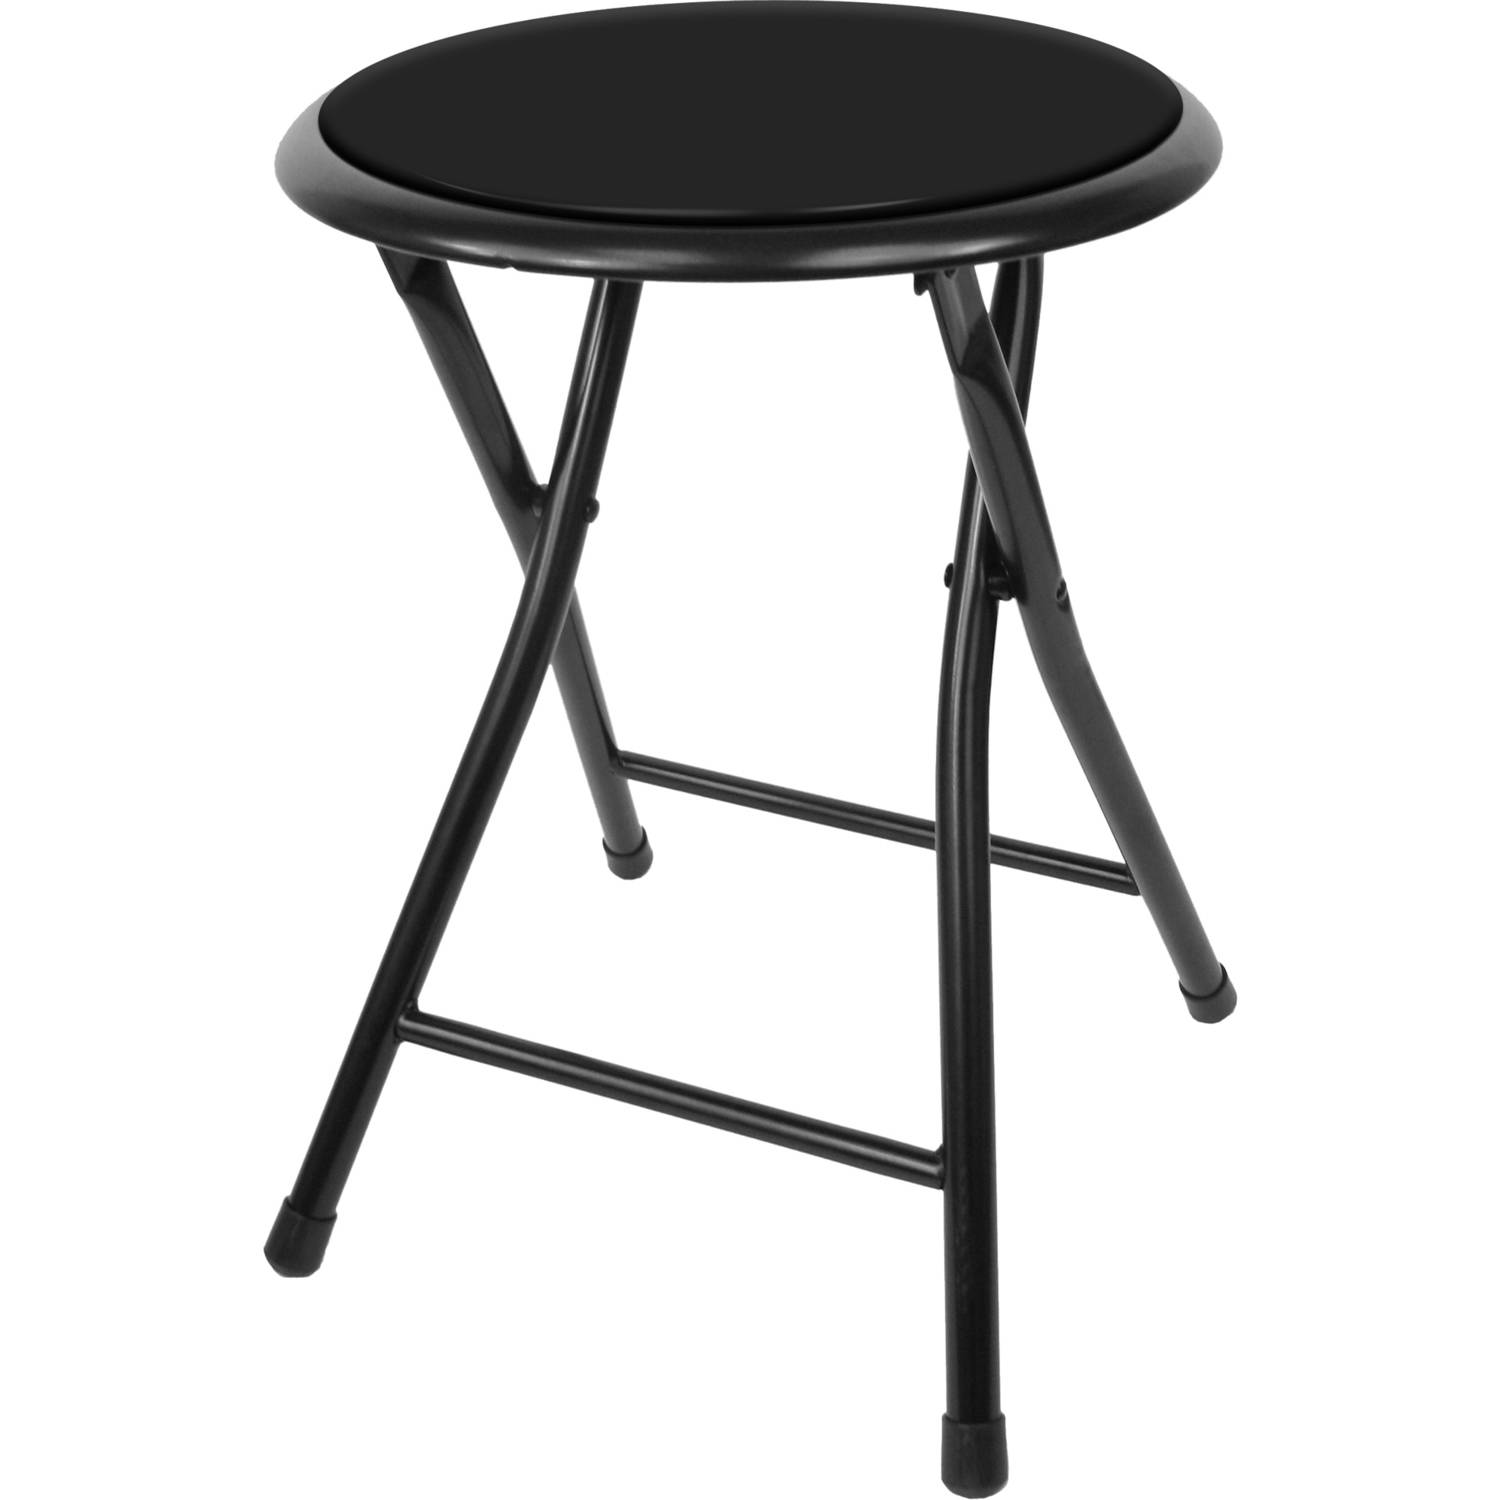 Folding Stool Heavy Duty 18 Inch Collapsible Padded Round Stool